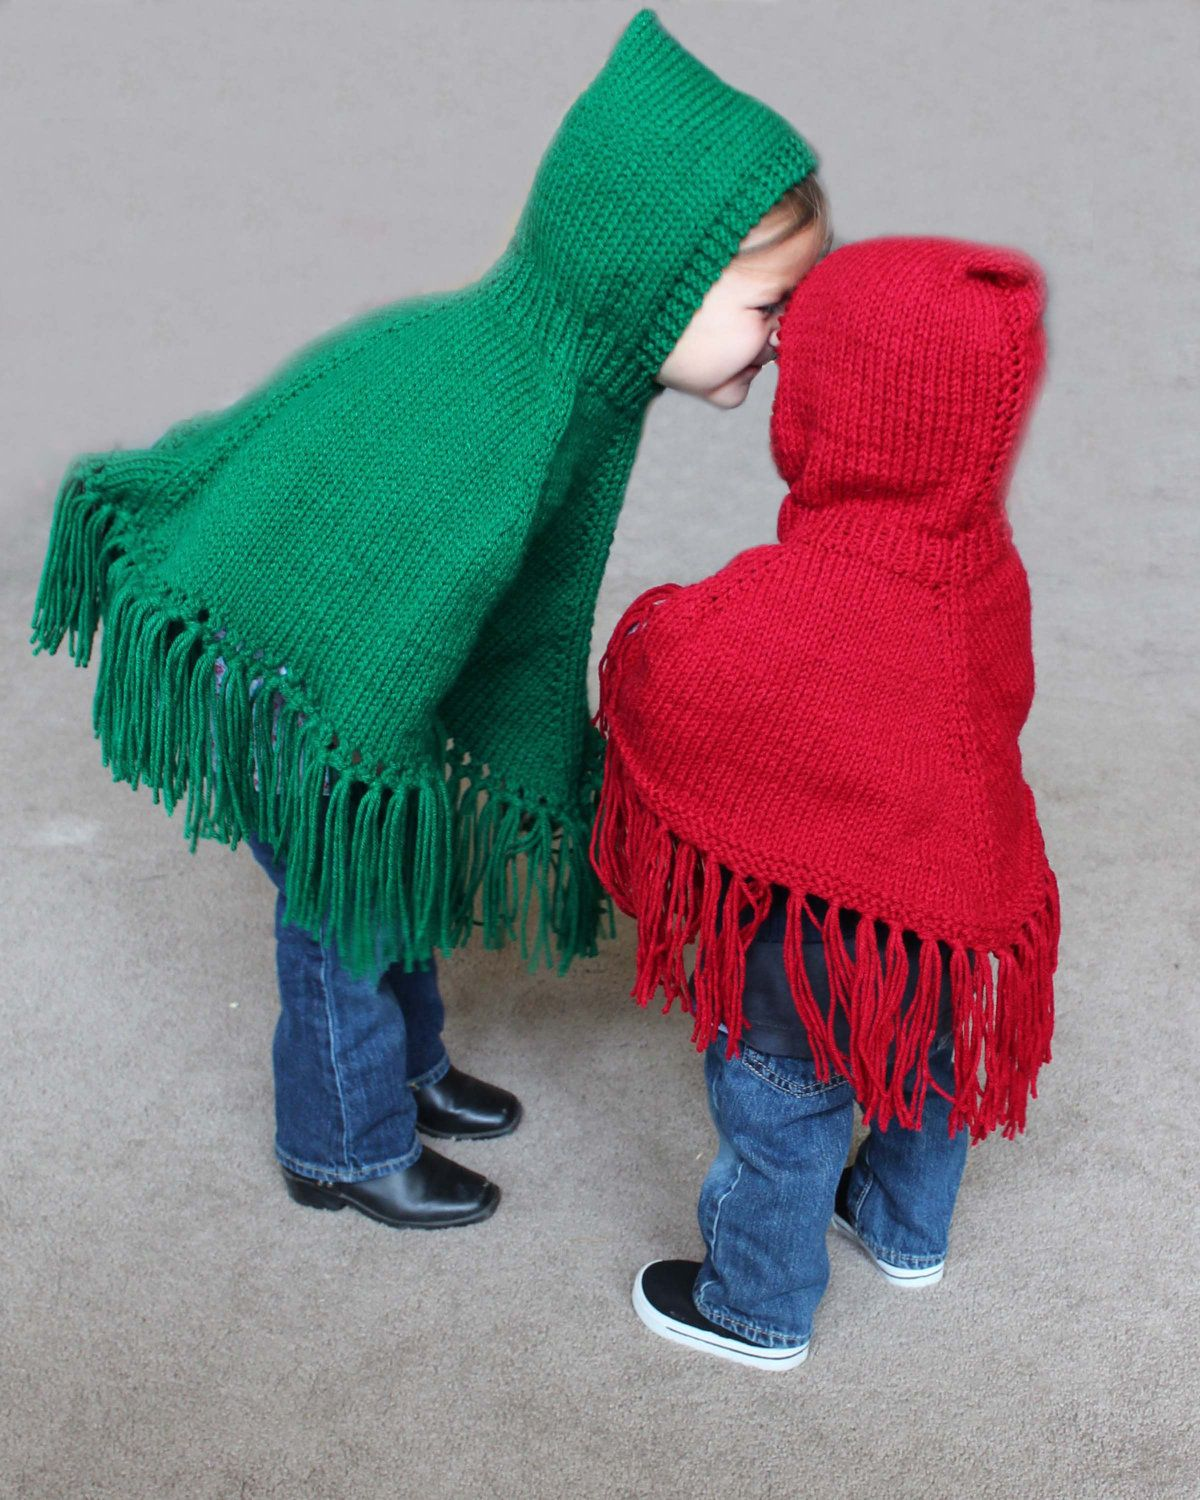 Pattern for Knitted Hooded Children's Ponchos | PDF ...